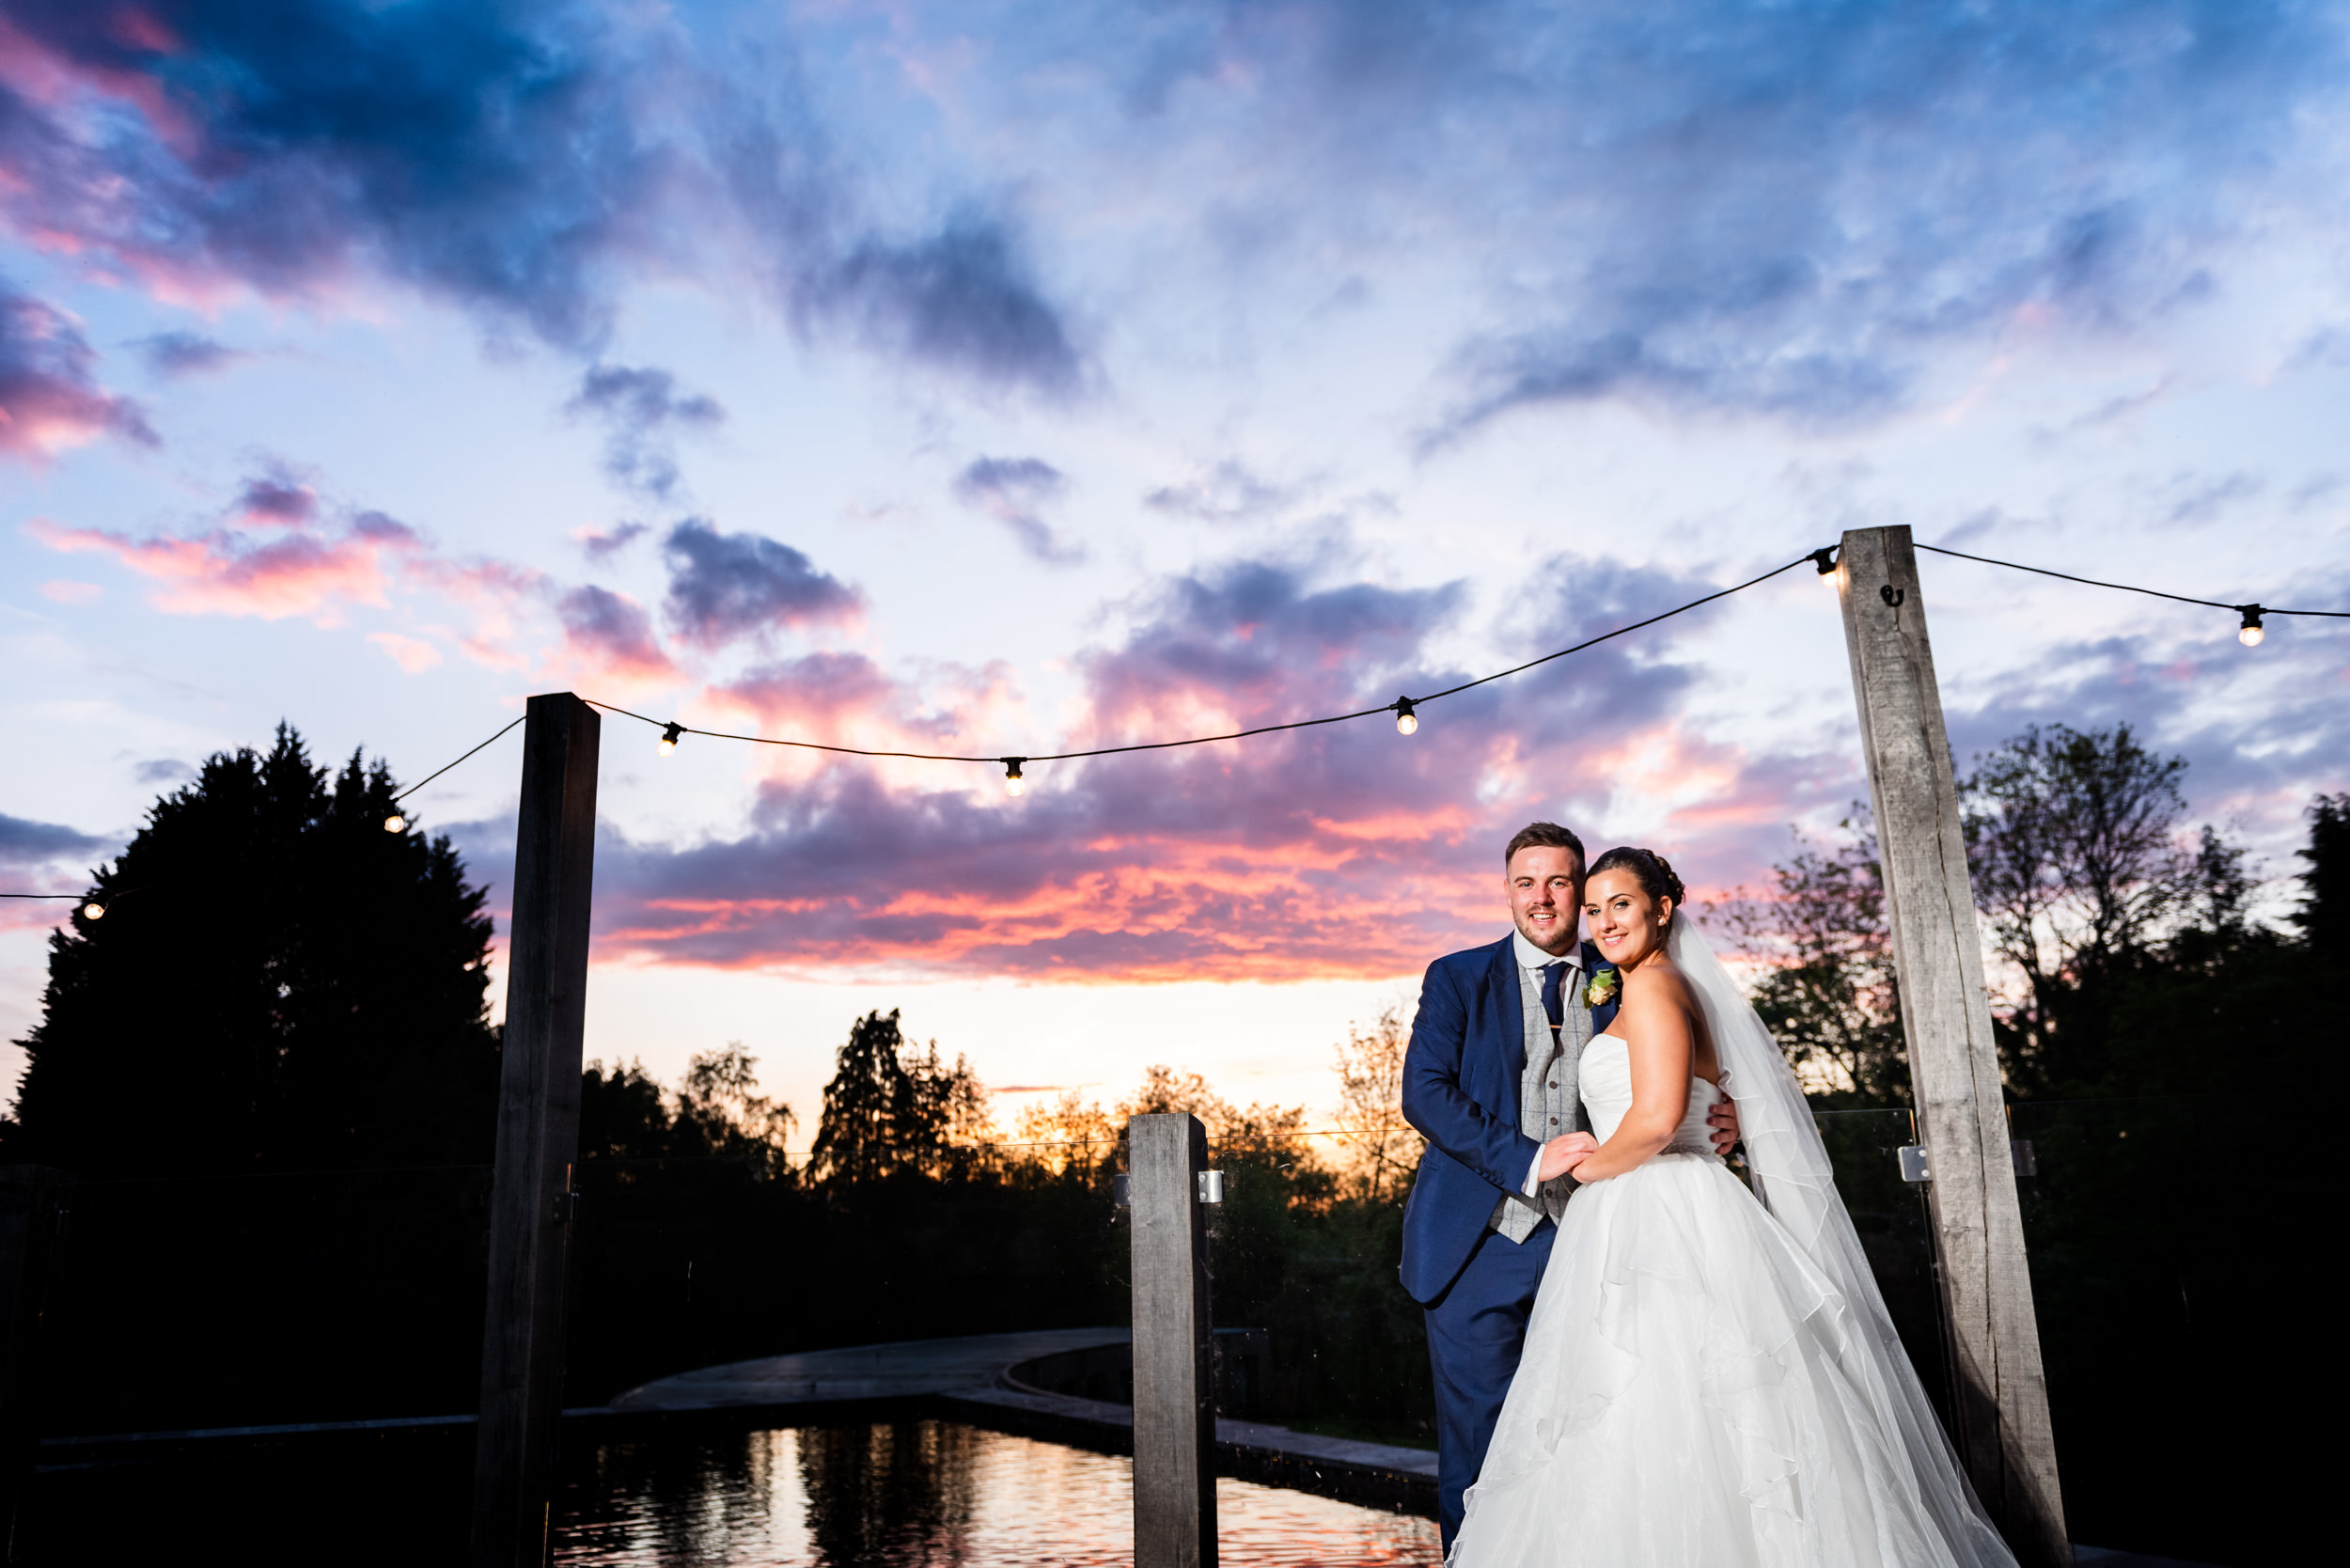 Groom holding his new wife in front of a dramatic sunset of pink and purple hues at The Mill Barns, Alverley